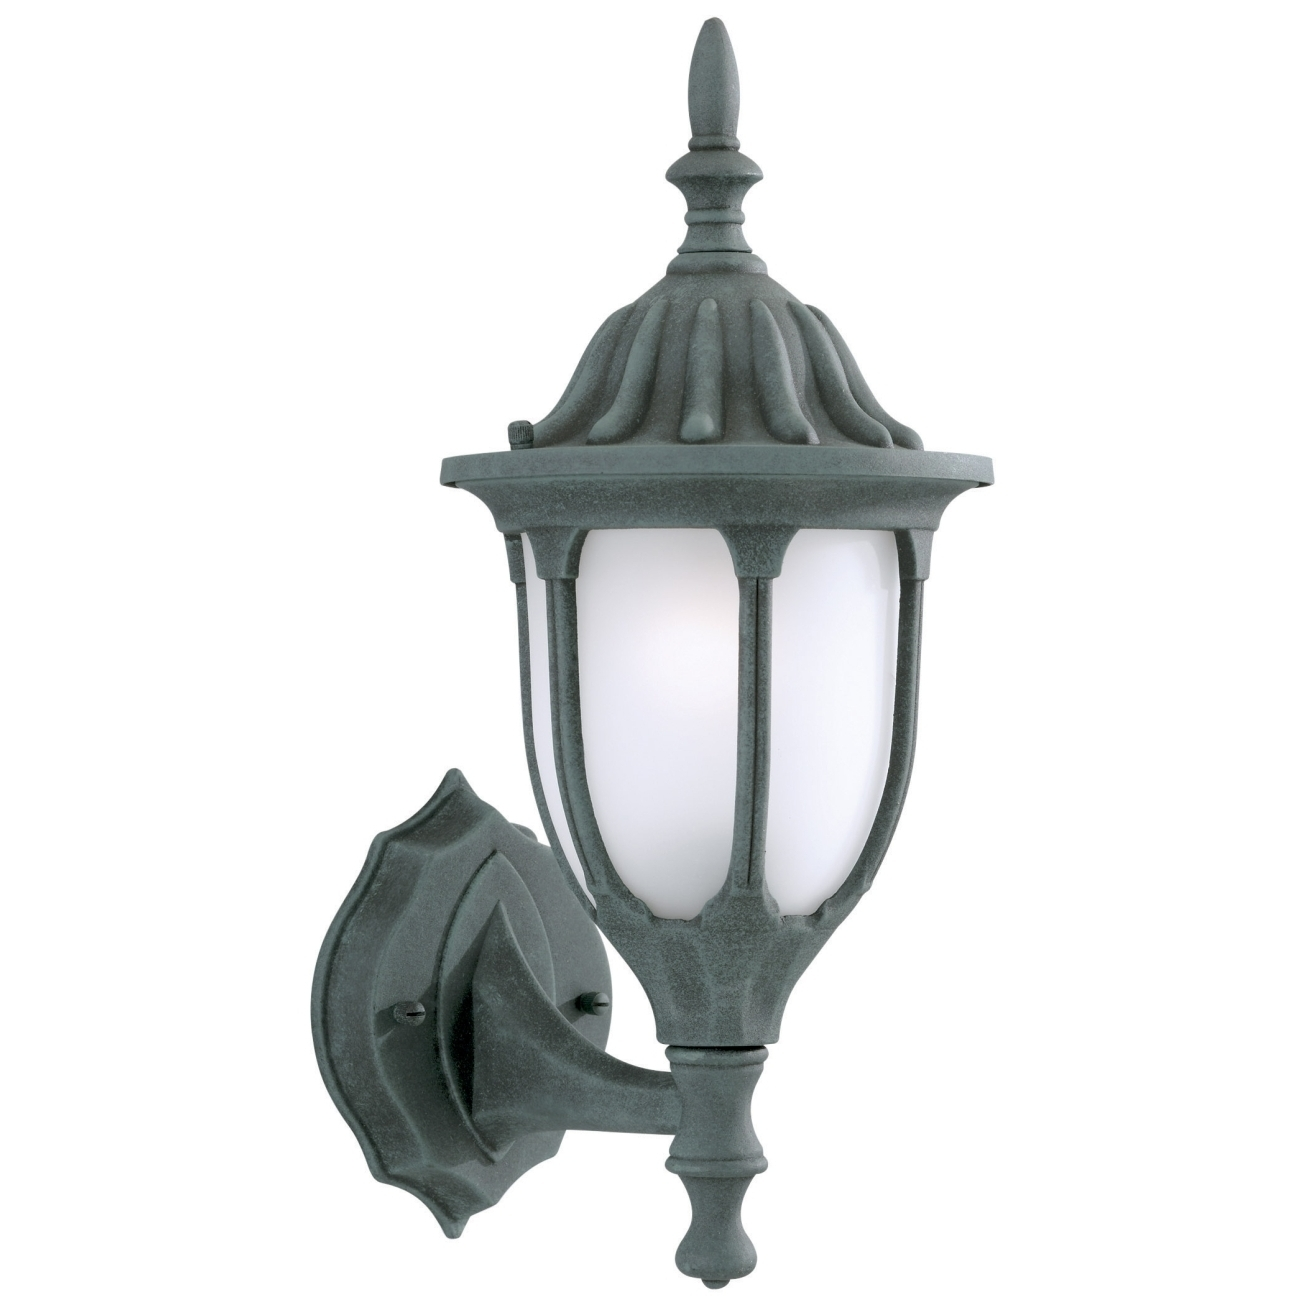 Exterior Light Fixtures & Outdoor Wall Lighting At Ace Hardware Inside Preferred Outdoor Wall Mounted Decorative Lighting (View 4 of 20)